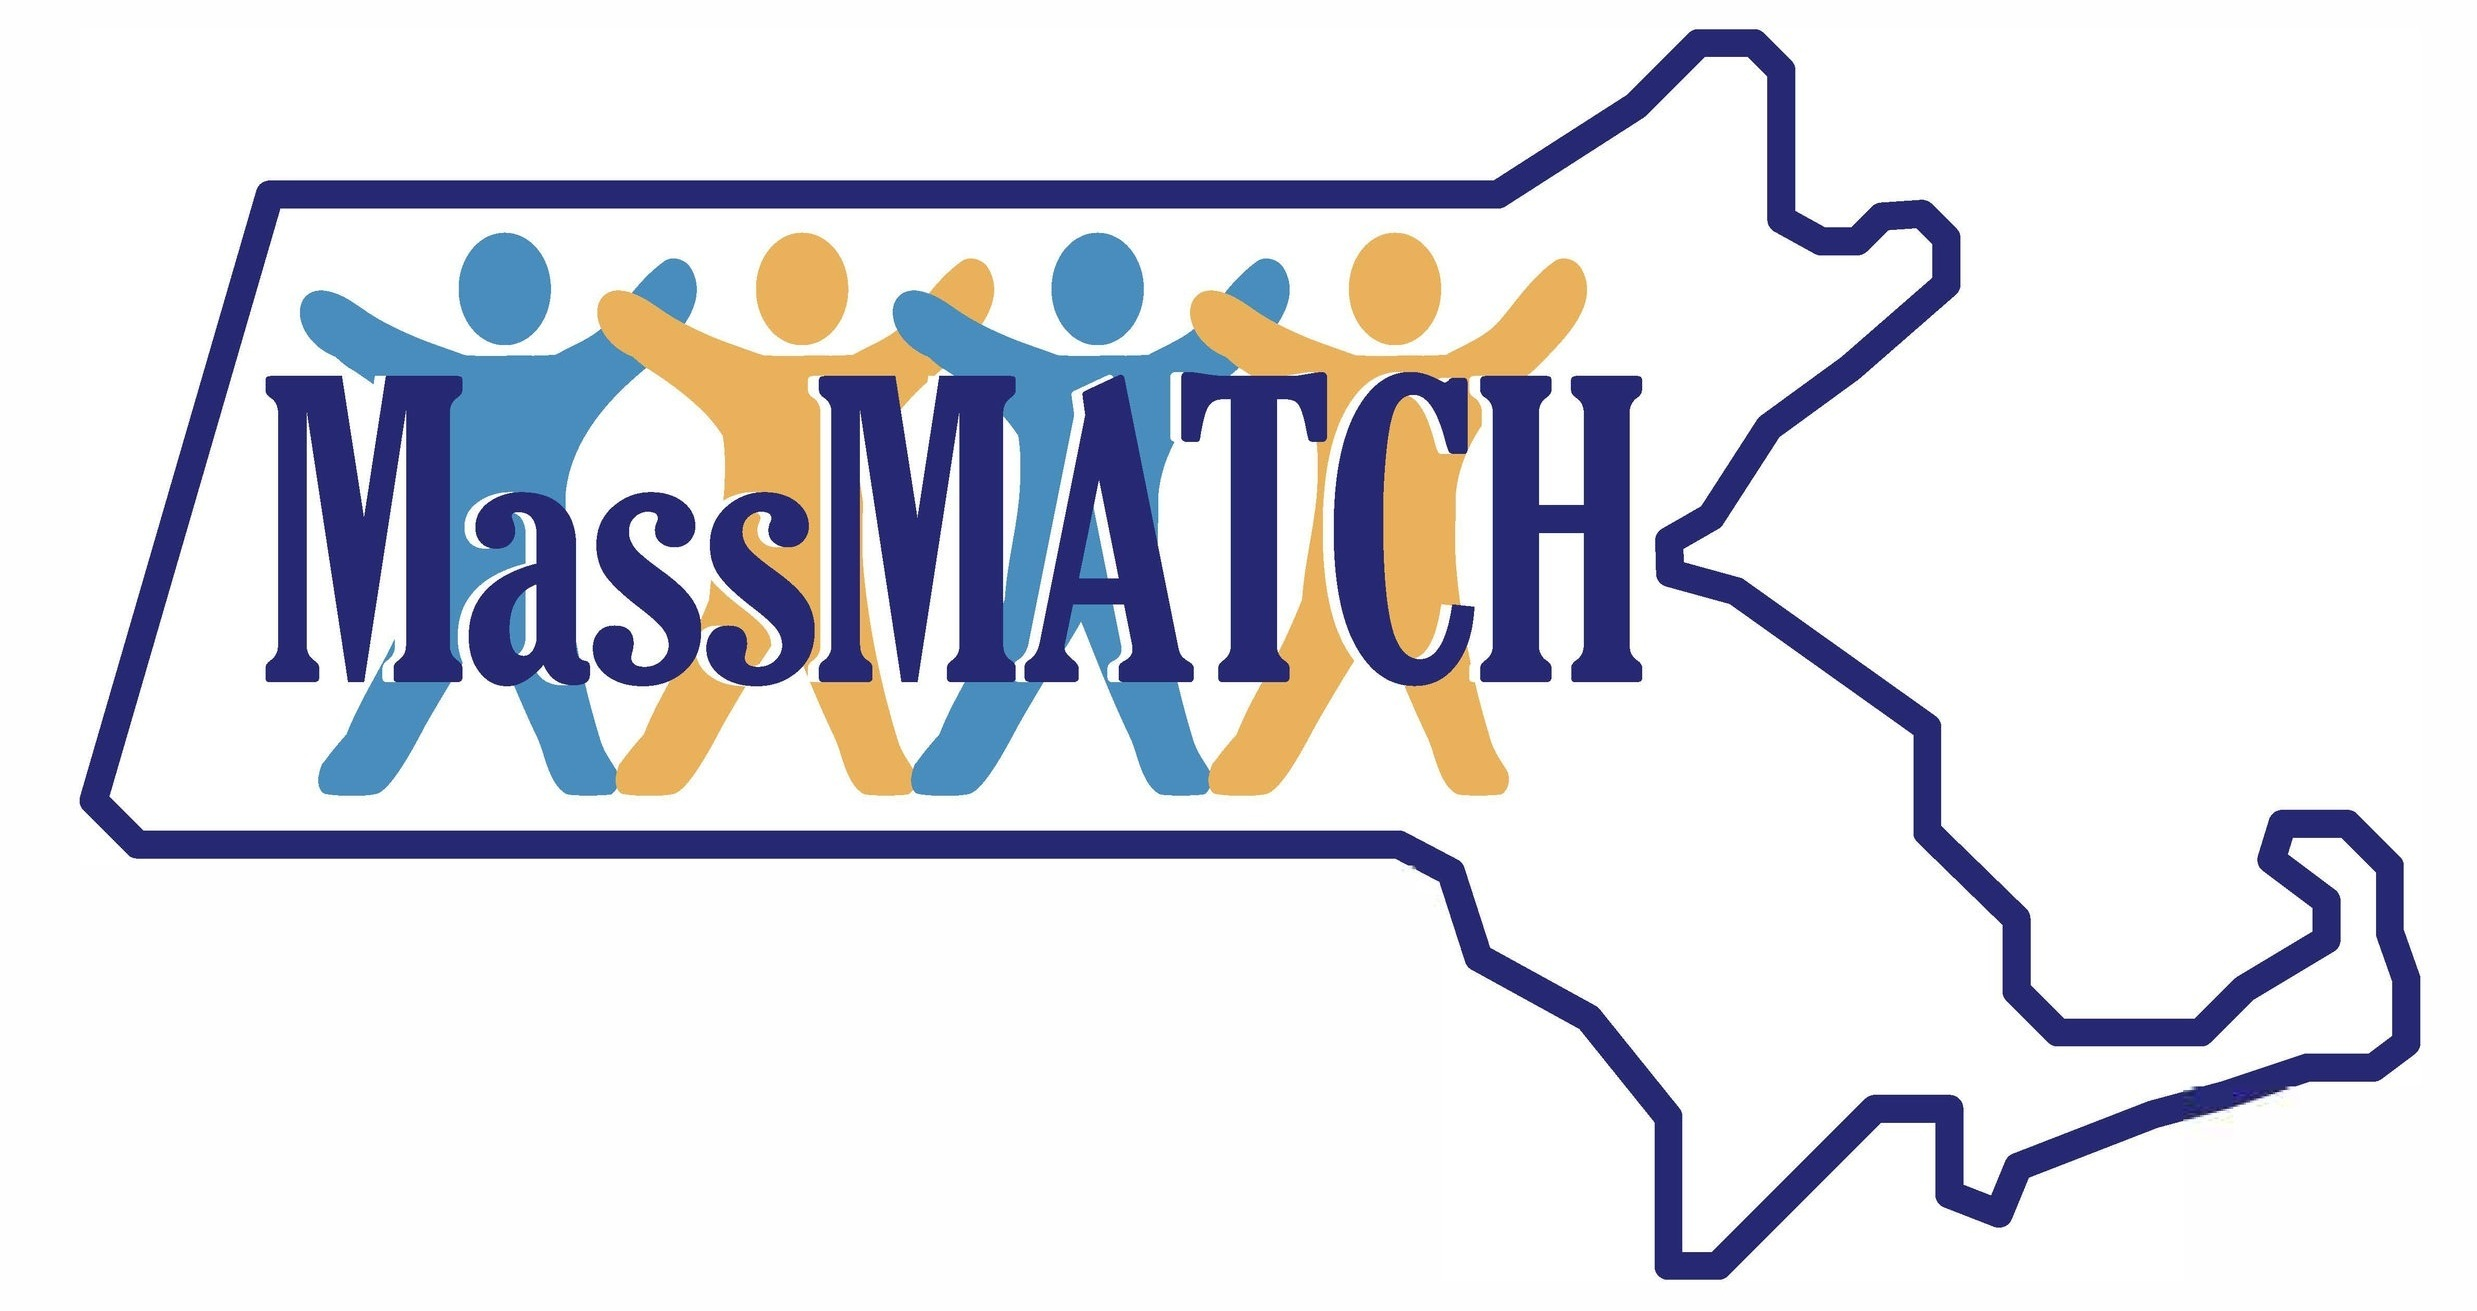 Mass match Logo. Maximizing assistive technology in consumer's hands